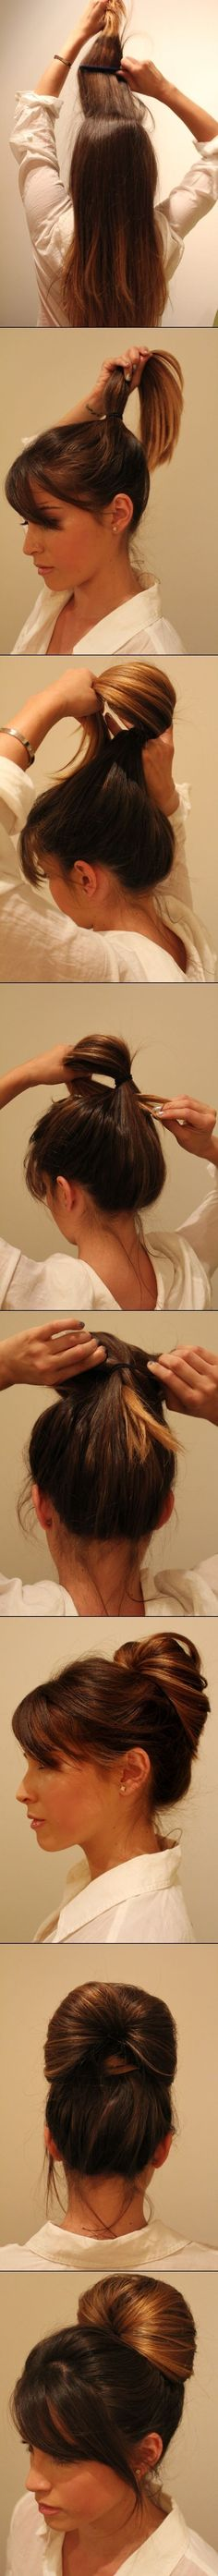 Useful tip if you have long hair